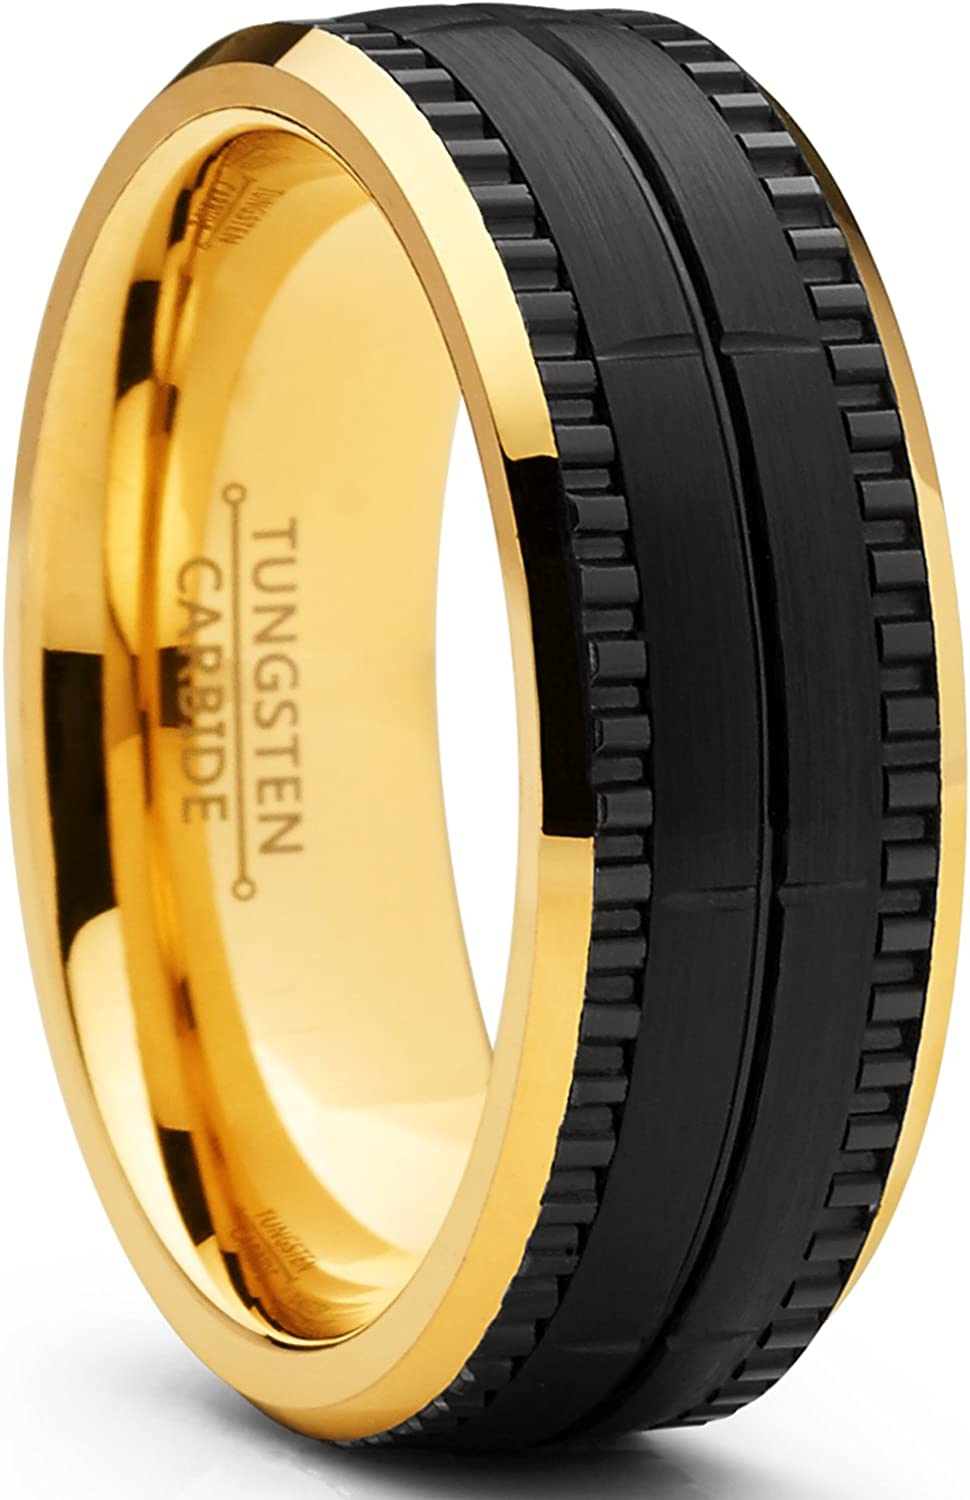 Metal Masters sold out Co. Men's Two Tone Textured Attention brand Black Bru and Goldtone